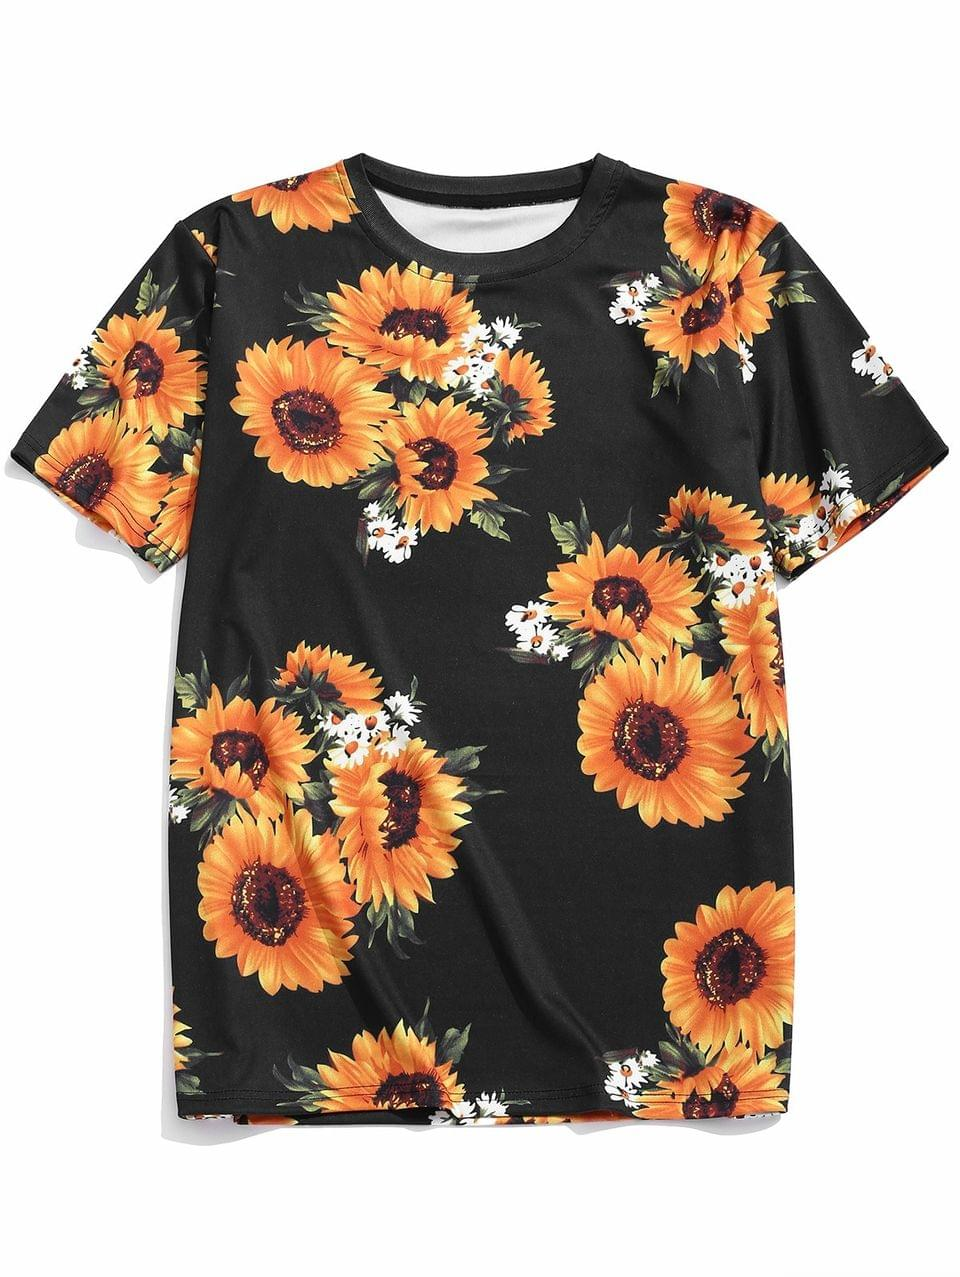 Men's Short Sleeves Sunflower Allover Print Casual T-shirt - Black Xl